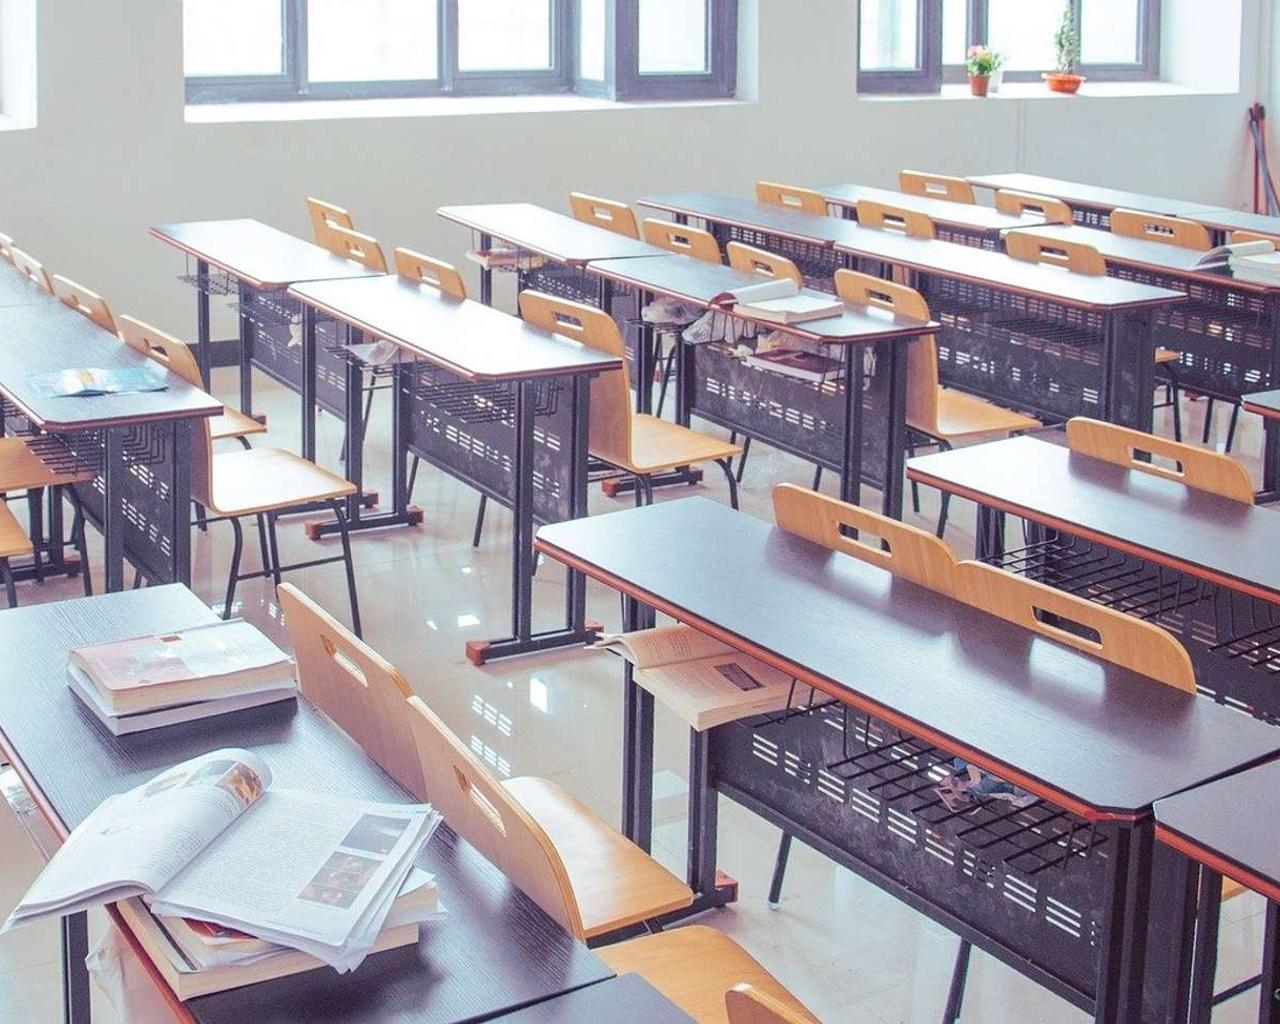 New York to Delay In-Class School Activities By Two Weeks — Shall Other States Follow?